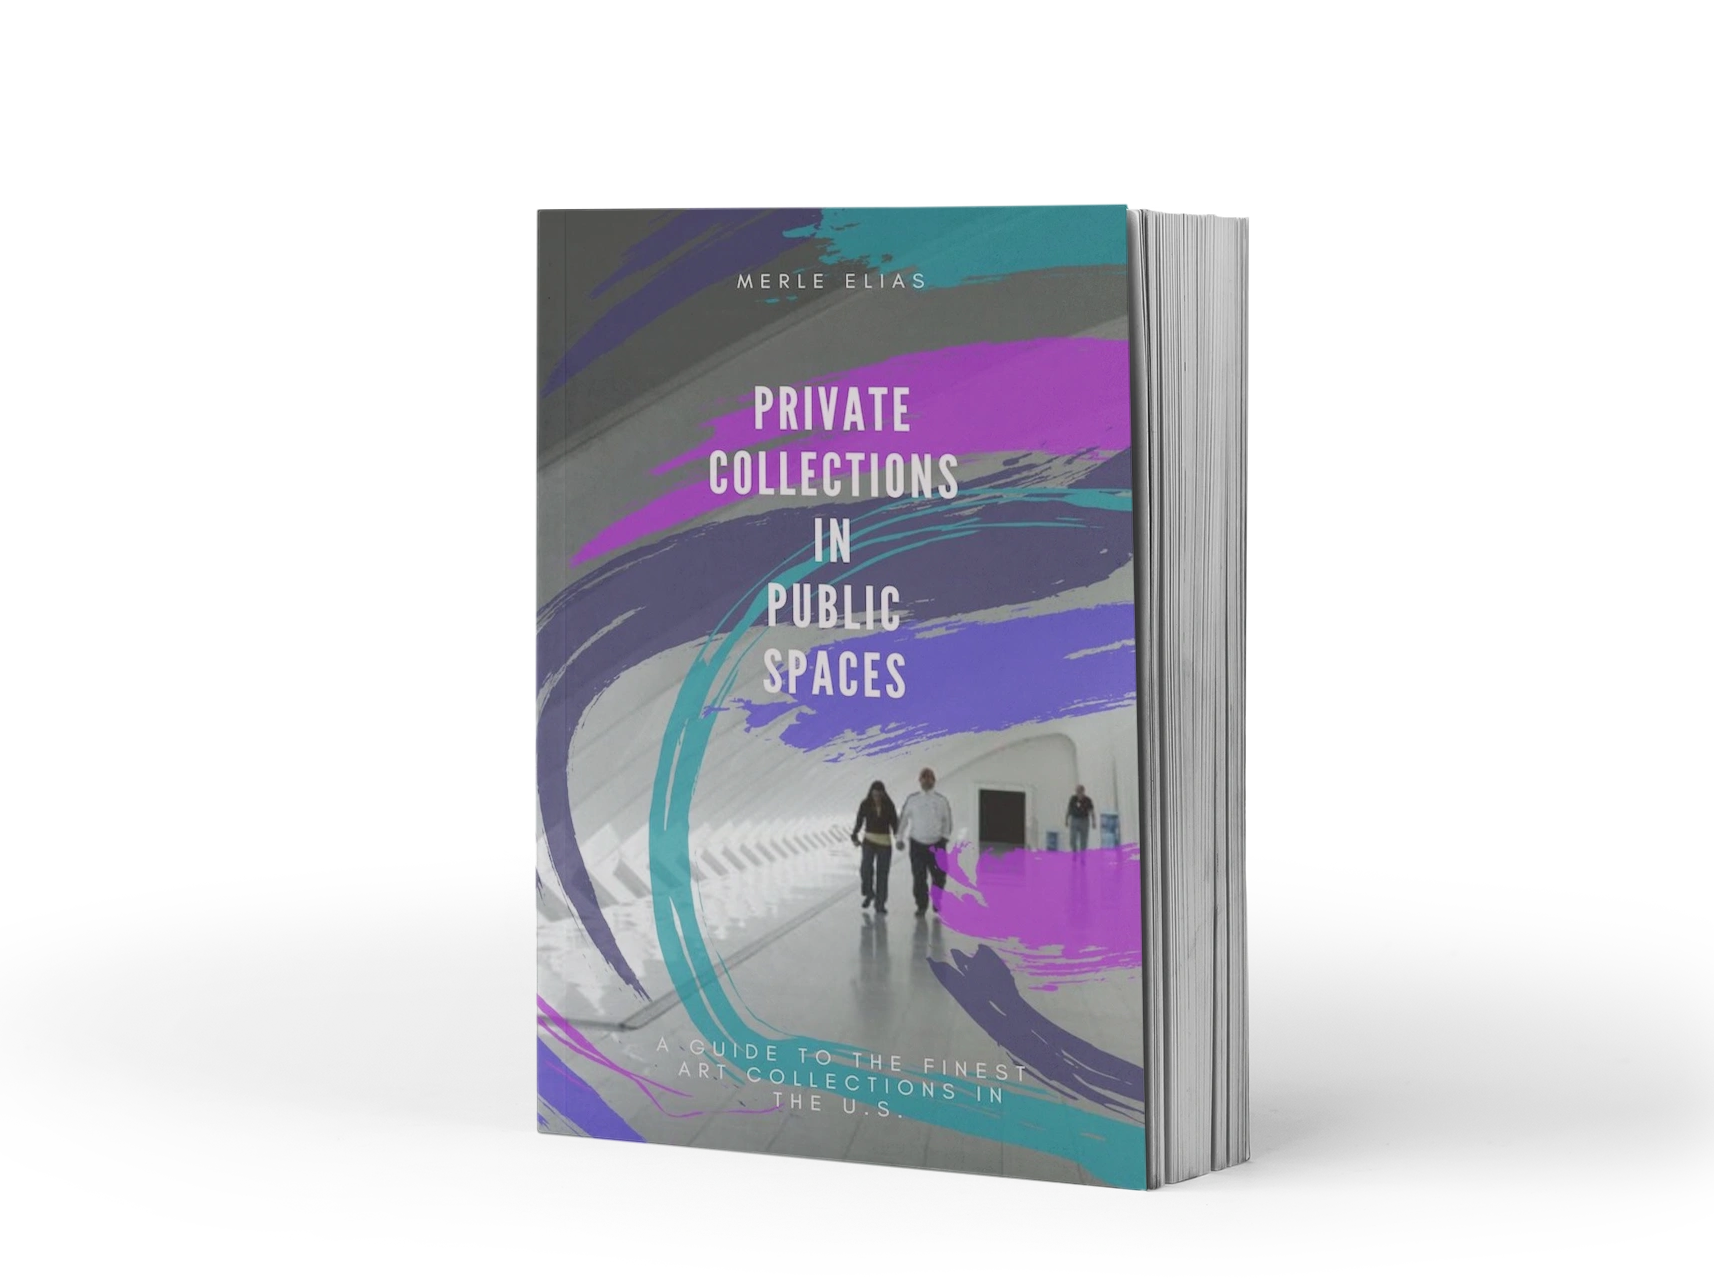 Private Collections in Public Spaces by Merle Elias